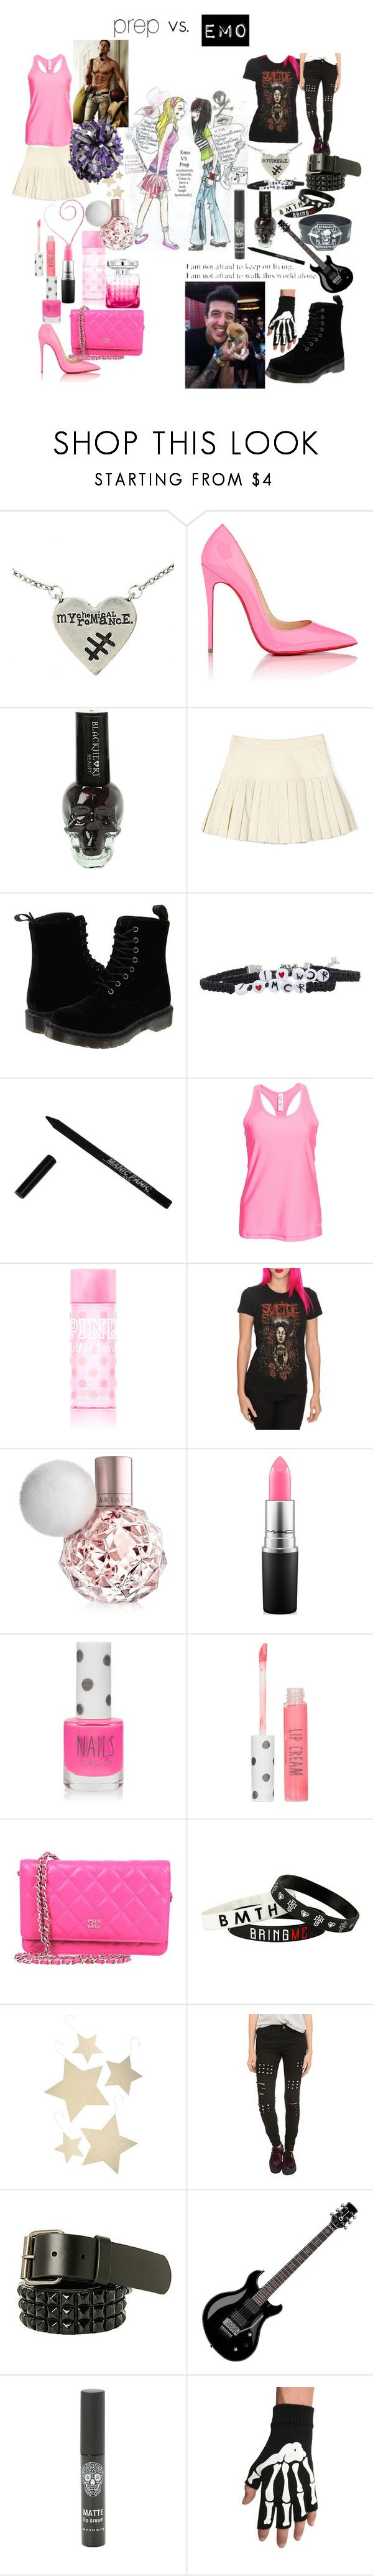 """""""emo vs prep"""" by katherinedeadmau5 ❤ liked on Polyvore featuring Hot Topic, Jimmy Choo, Christian Louboutin, Pam & Gela, Dr. Martens, Manic Panic NYC, Under Armour, MAC Cosmetics, Topshop and Bethany Lowe"""